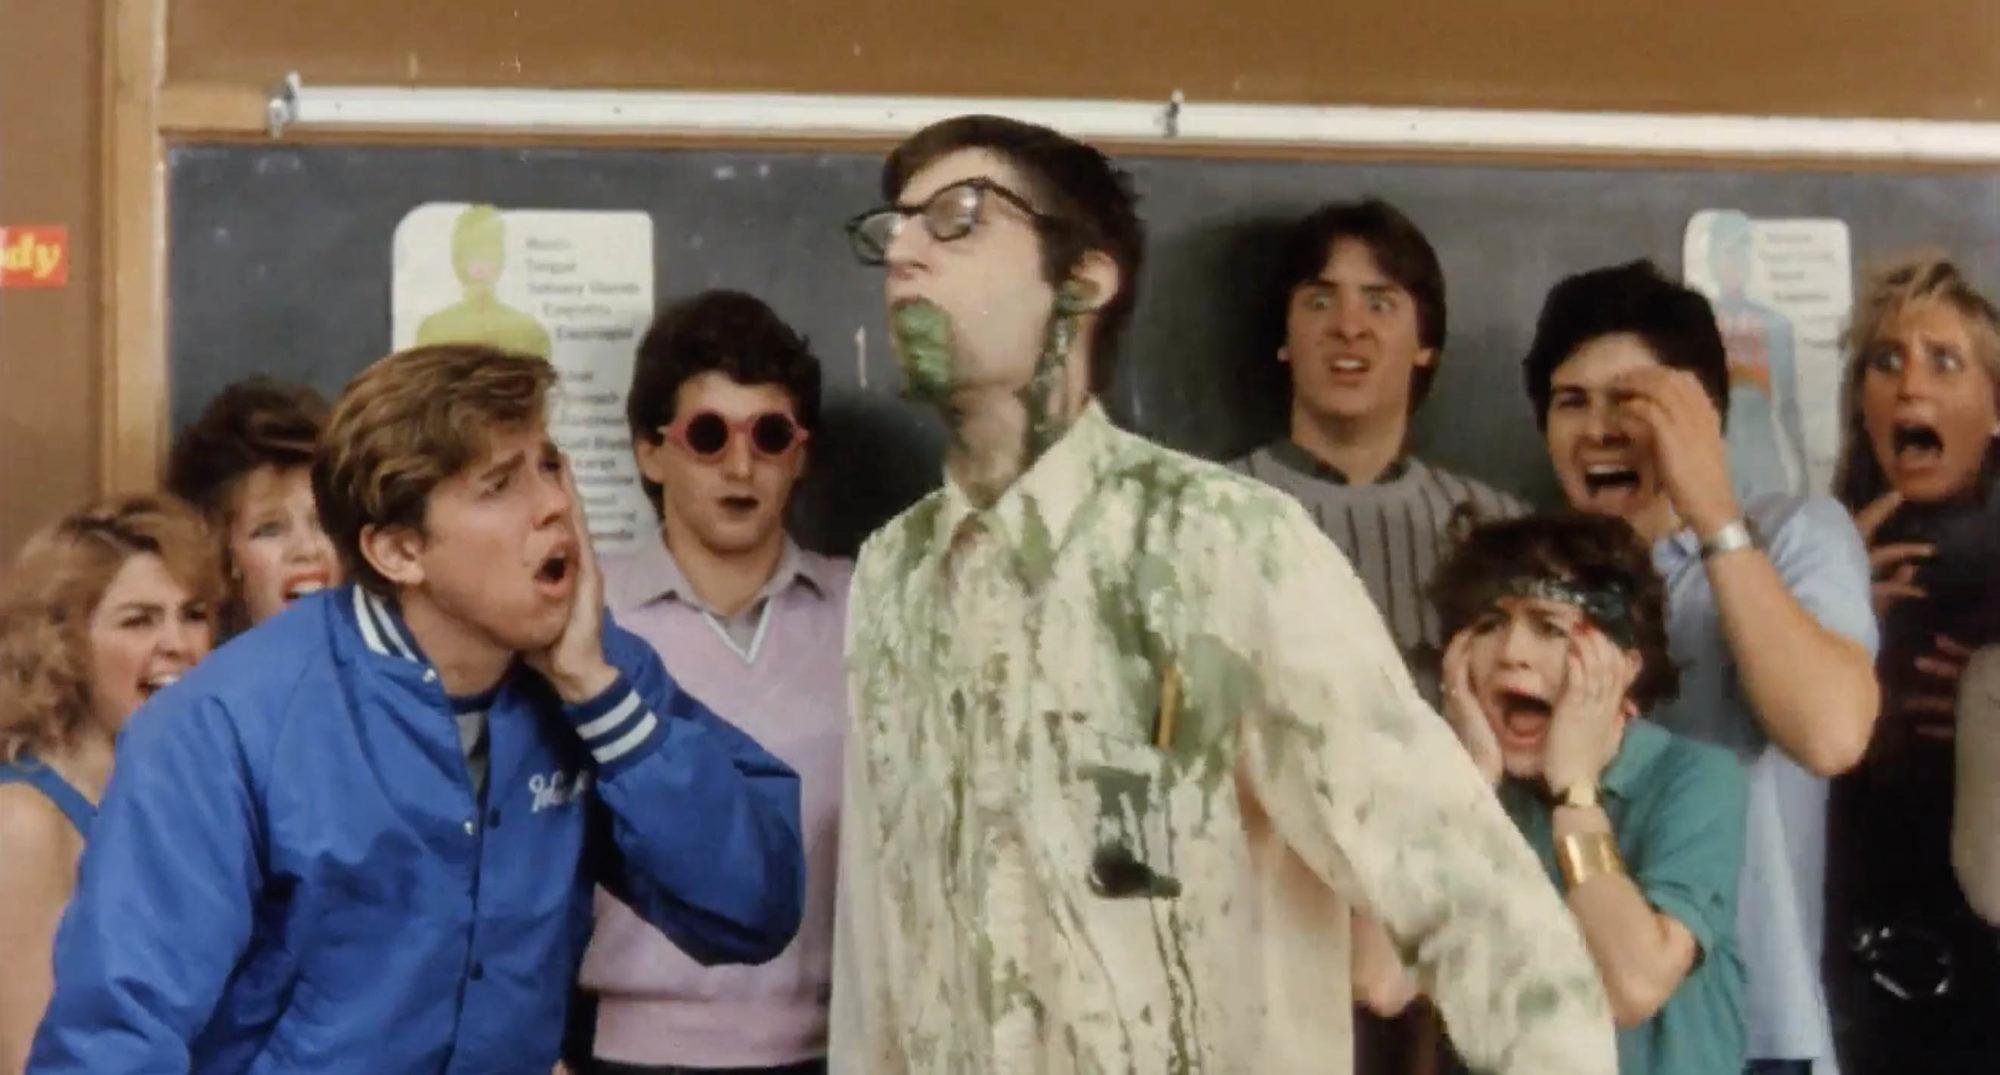 Gil Brenton and Arthur Lorenz in Class of Nuke 'Em High (1986)